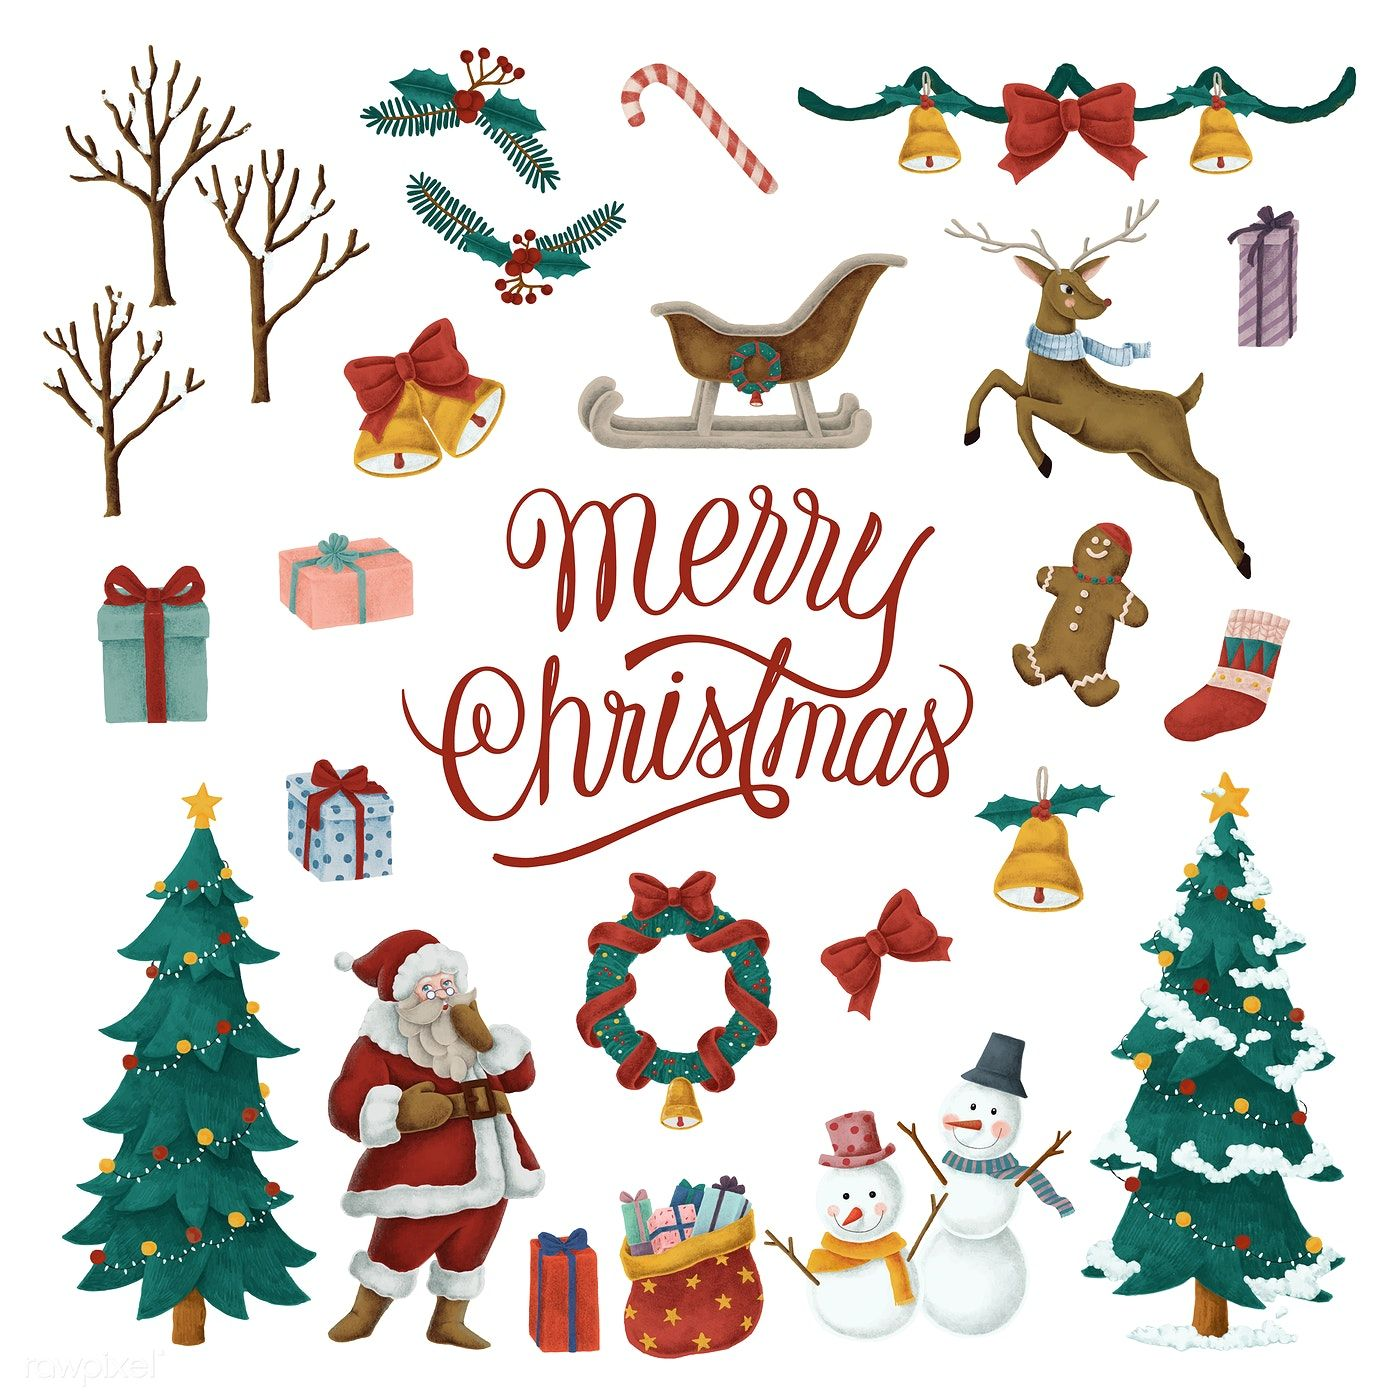 Set of hand drawn Christmas illustrations | free image by rawpixel ...